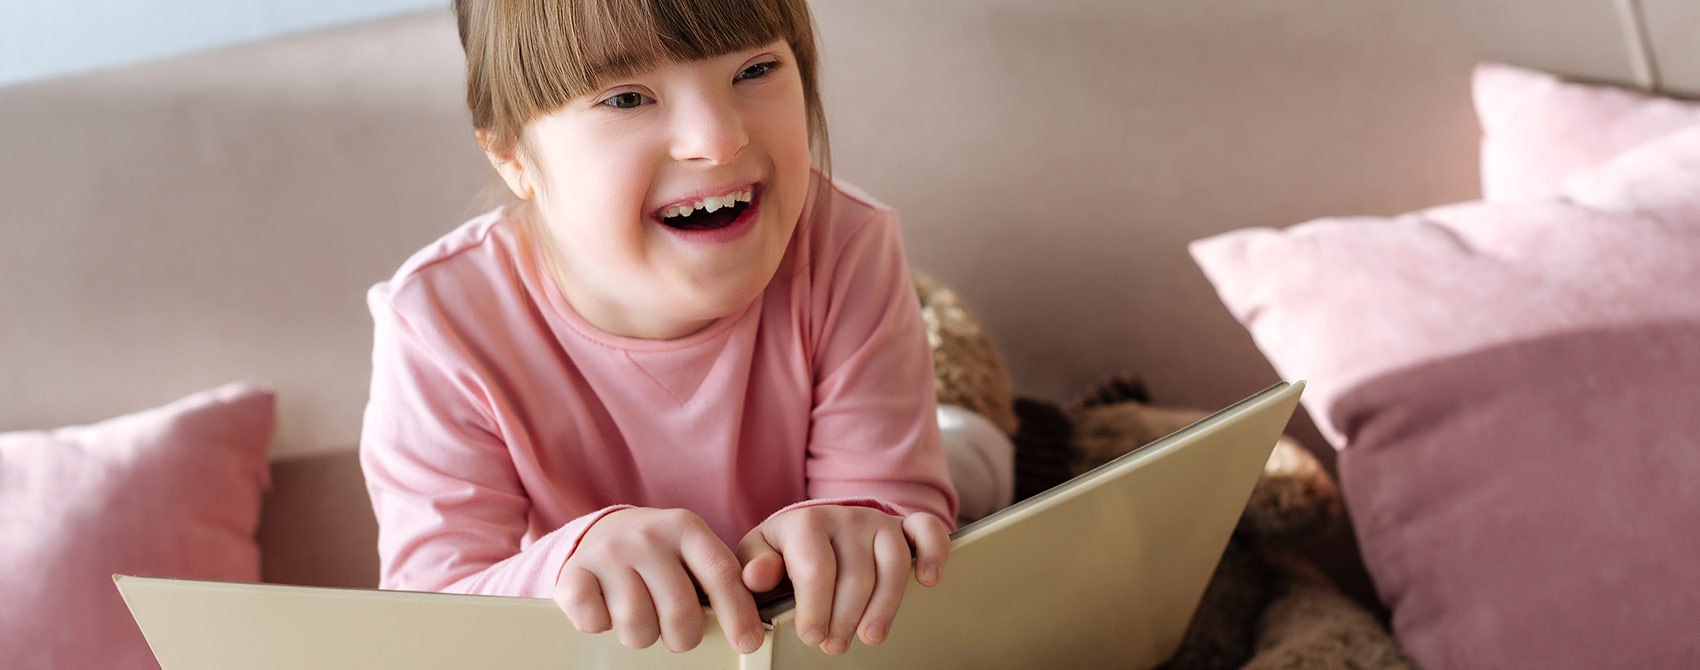 A smiling young girl with special needs holds an open book.